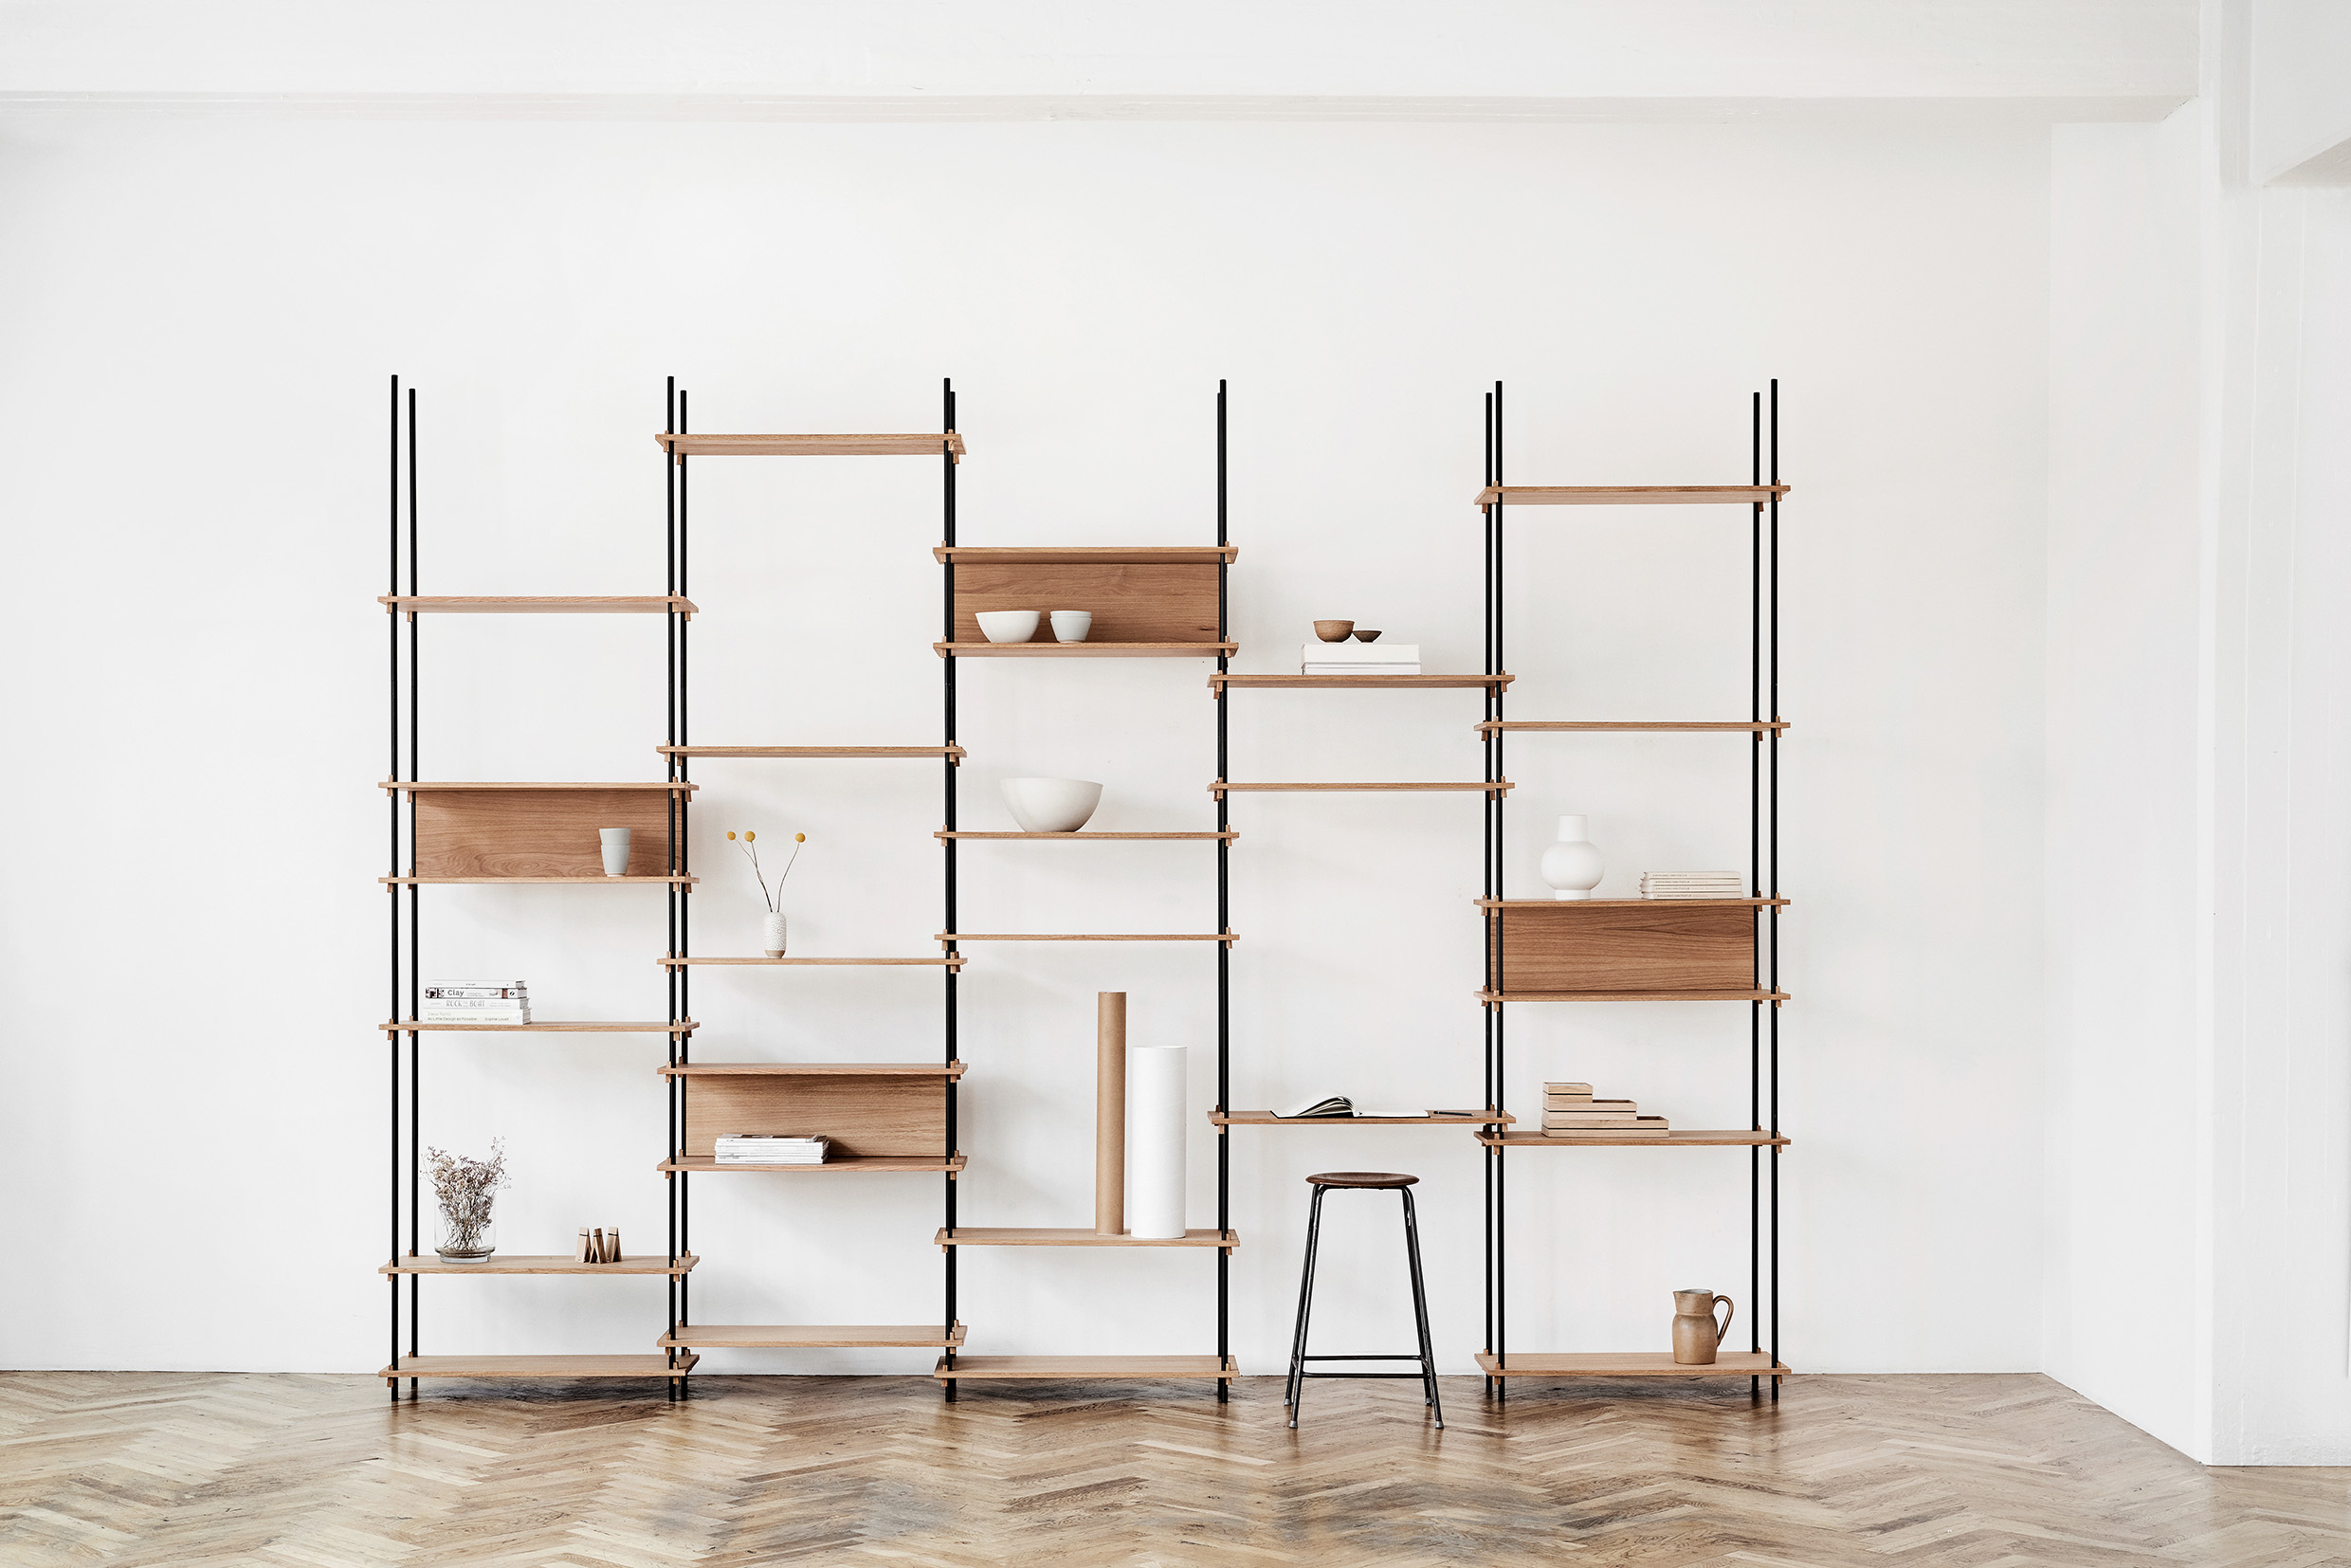 MOEBE_SHELVING-SYSTEM_IN-CONTEXT_LOW-RES_08.jpg